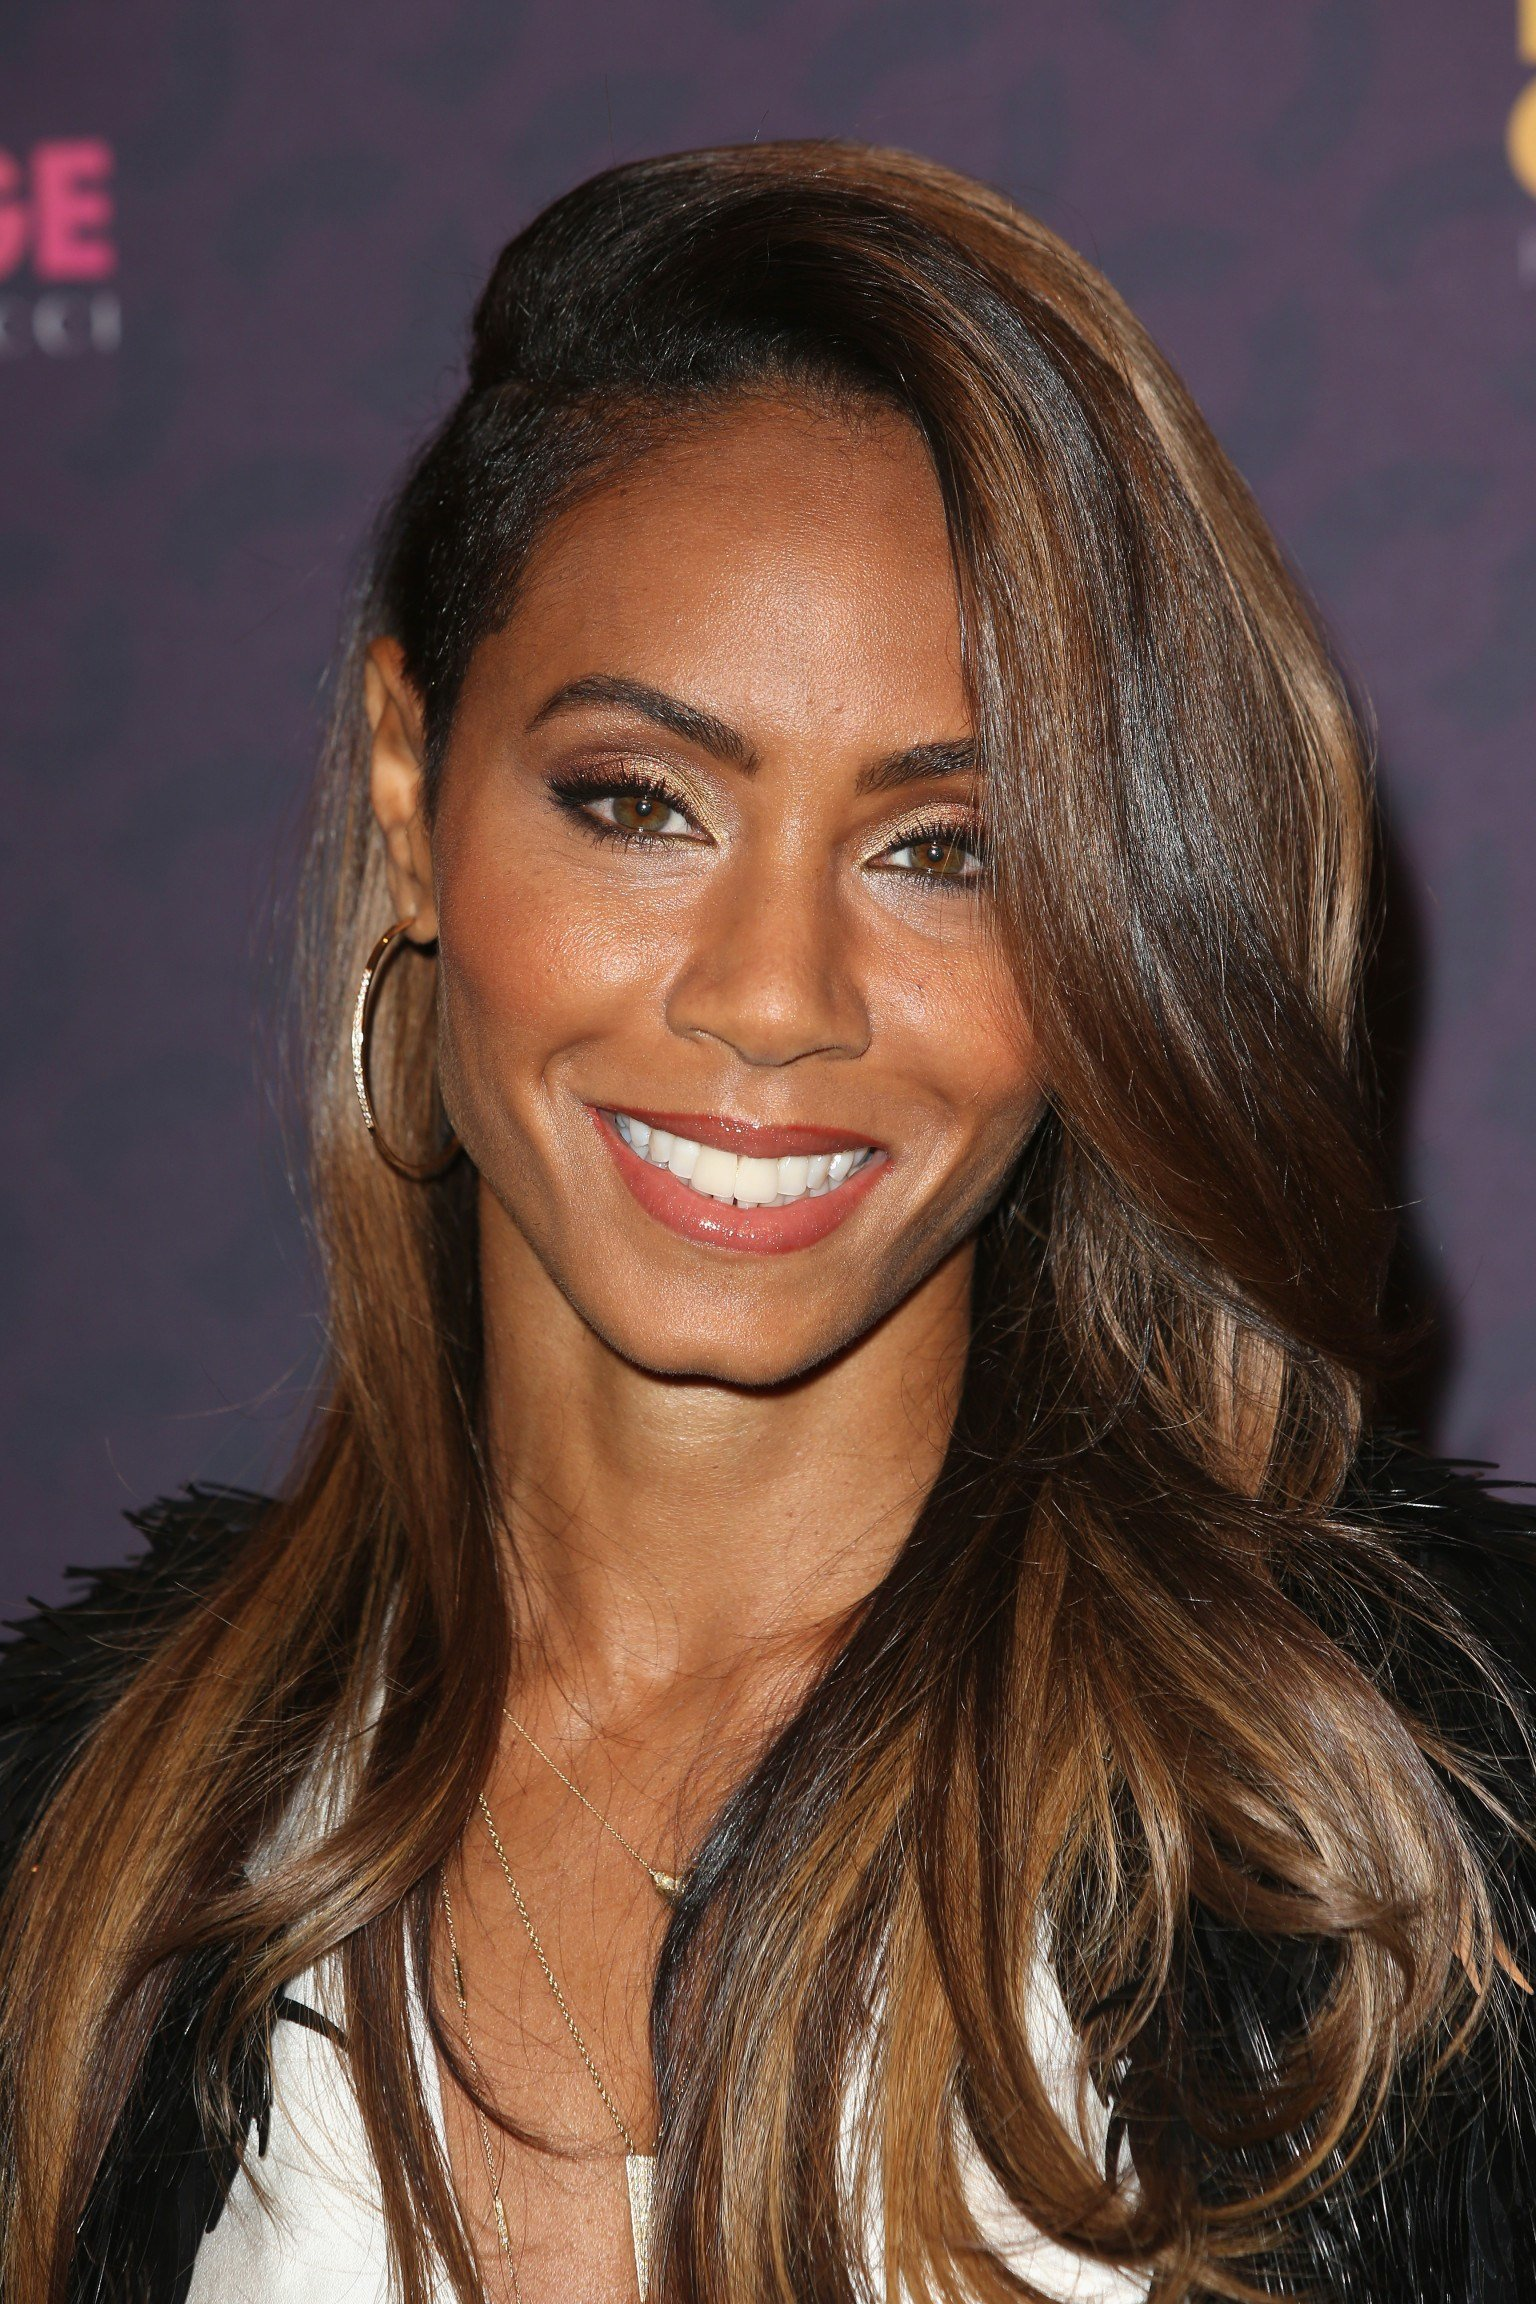 The Best Jada Pinkett Smith S Divorce Advice Shared On Her Facebook Pictures